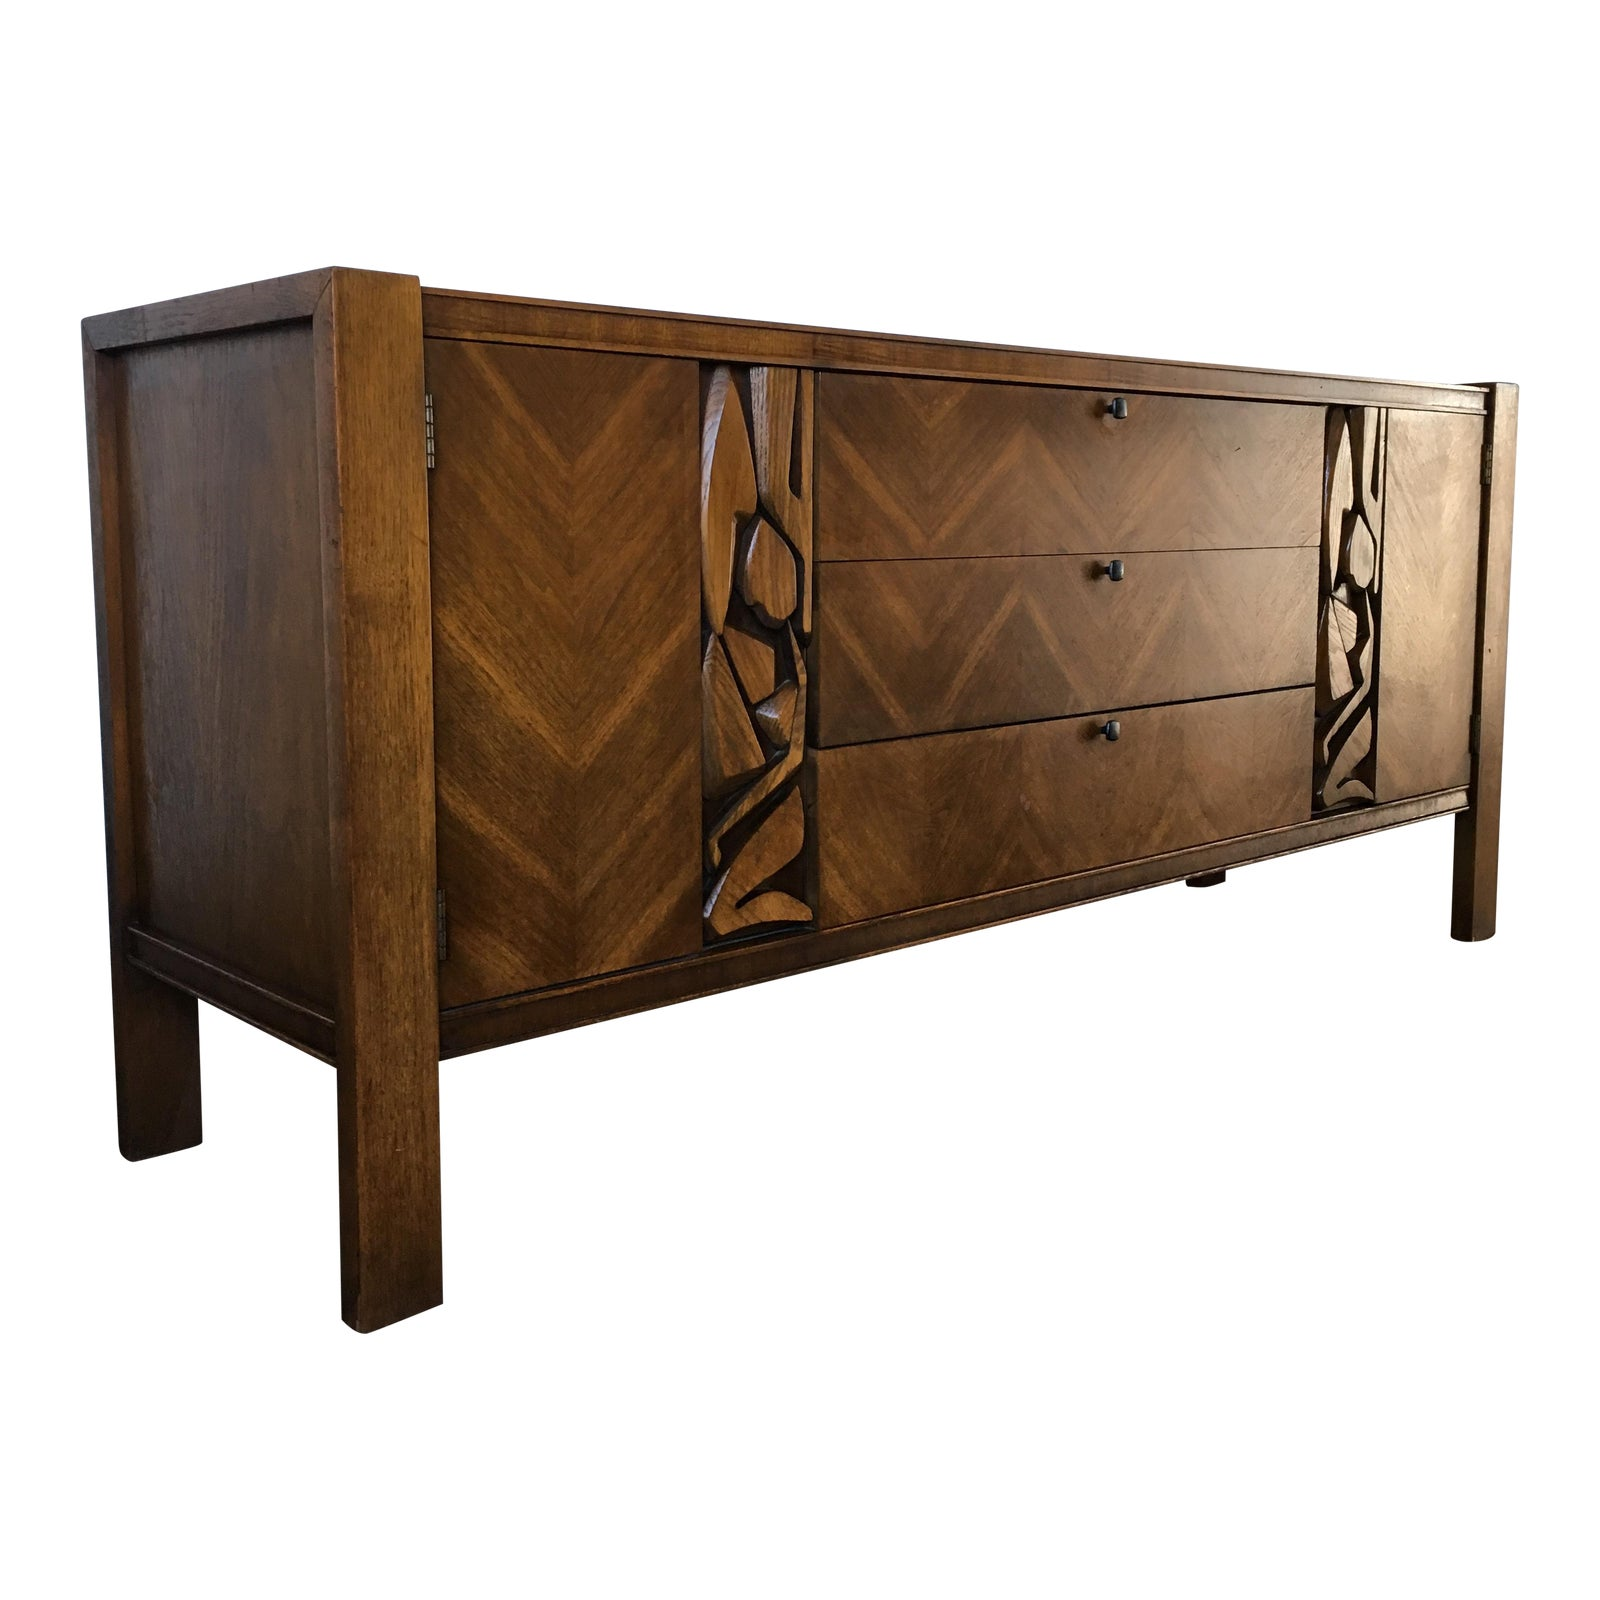 Vintage United Furniture Mid Century Modern Brutalist Credenza - Chairish